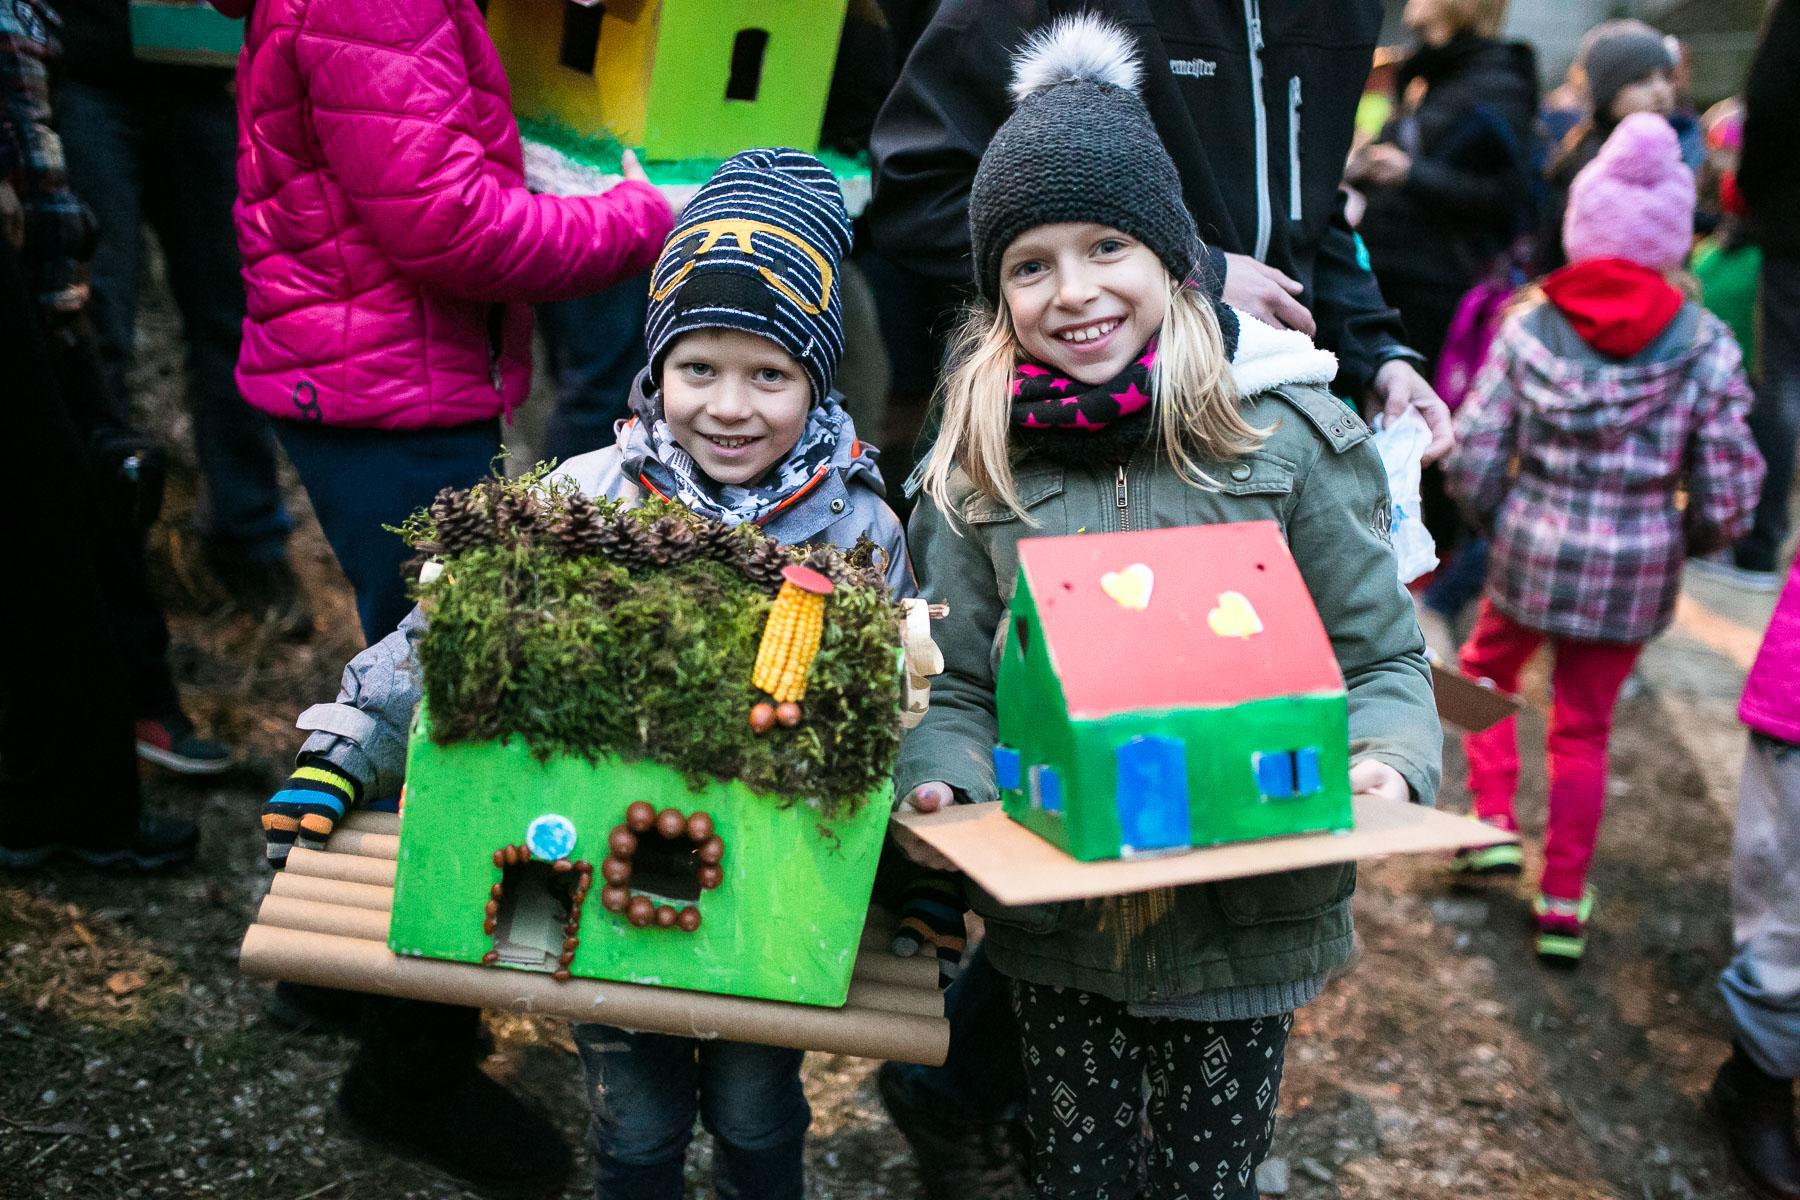 Children pose with their model houses or {quote}gregorcki{quote} during a traditional event called Light in the water, in which model houses and other objects are lit with candles and thrown in the water to symbolize the coming of spring, in Trzic, Slovenia, on March 11, 2016, the eve before St. Gregory's Day that was once the first day of spring.